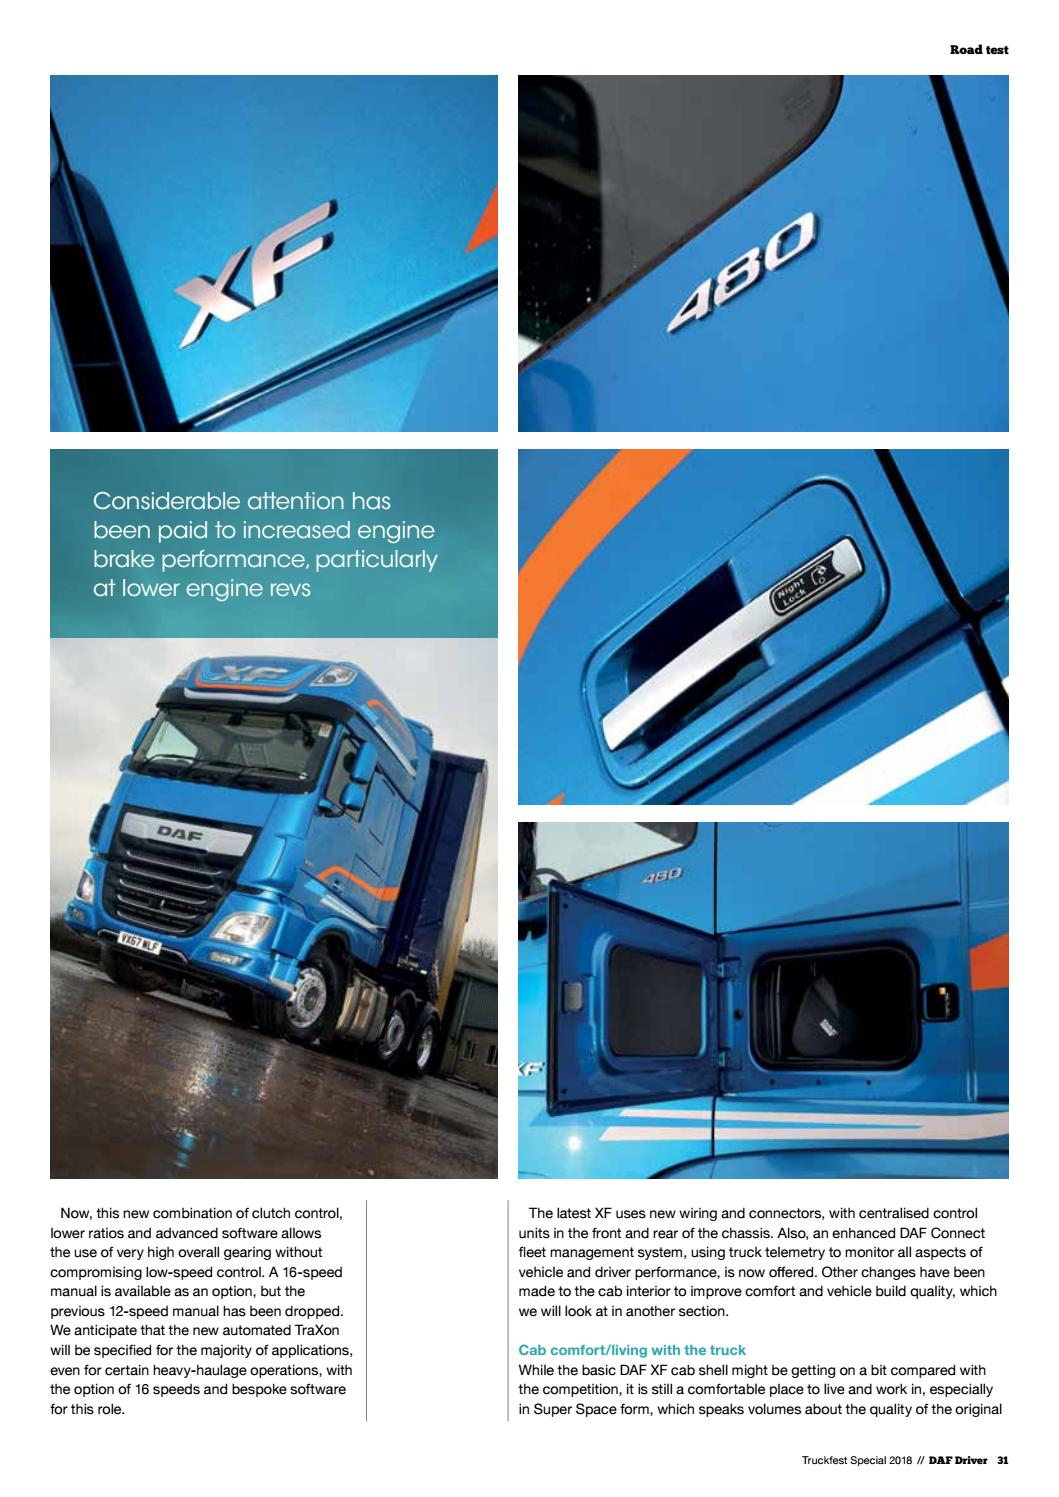 Daf Driver Truckfest Special 2018 Issue 14 Commercial Motor Wiring By Smith Davis Press Issuu